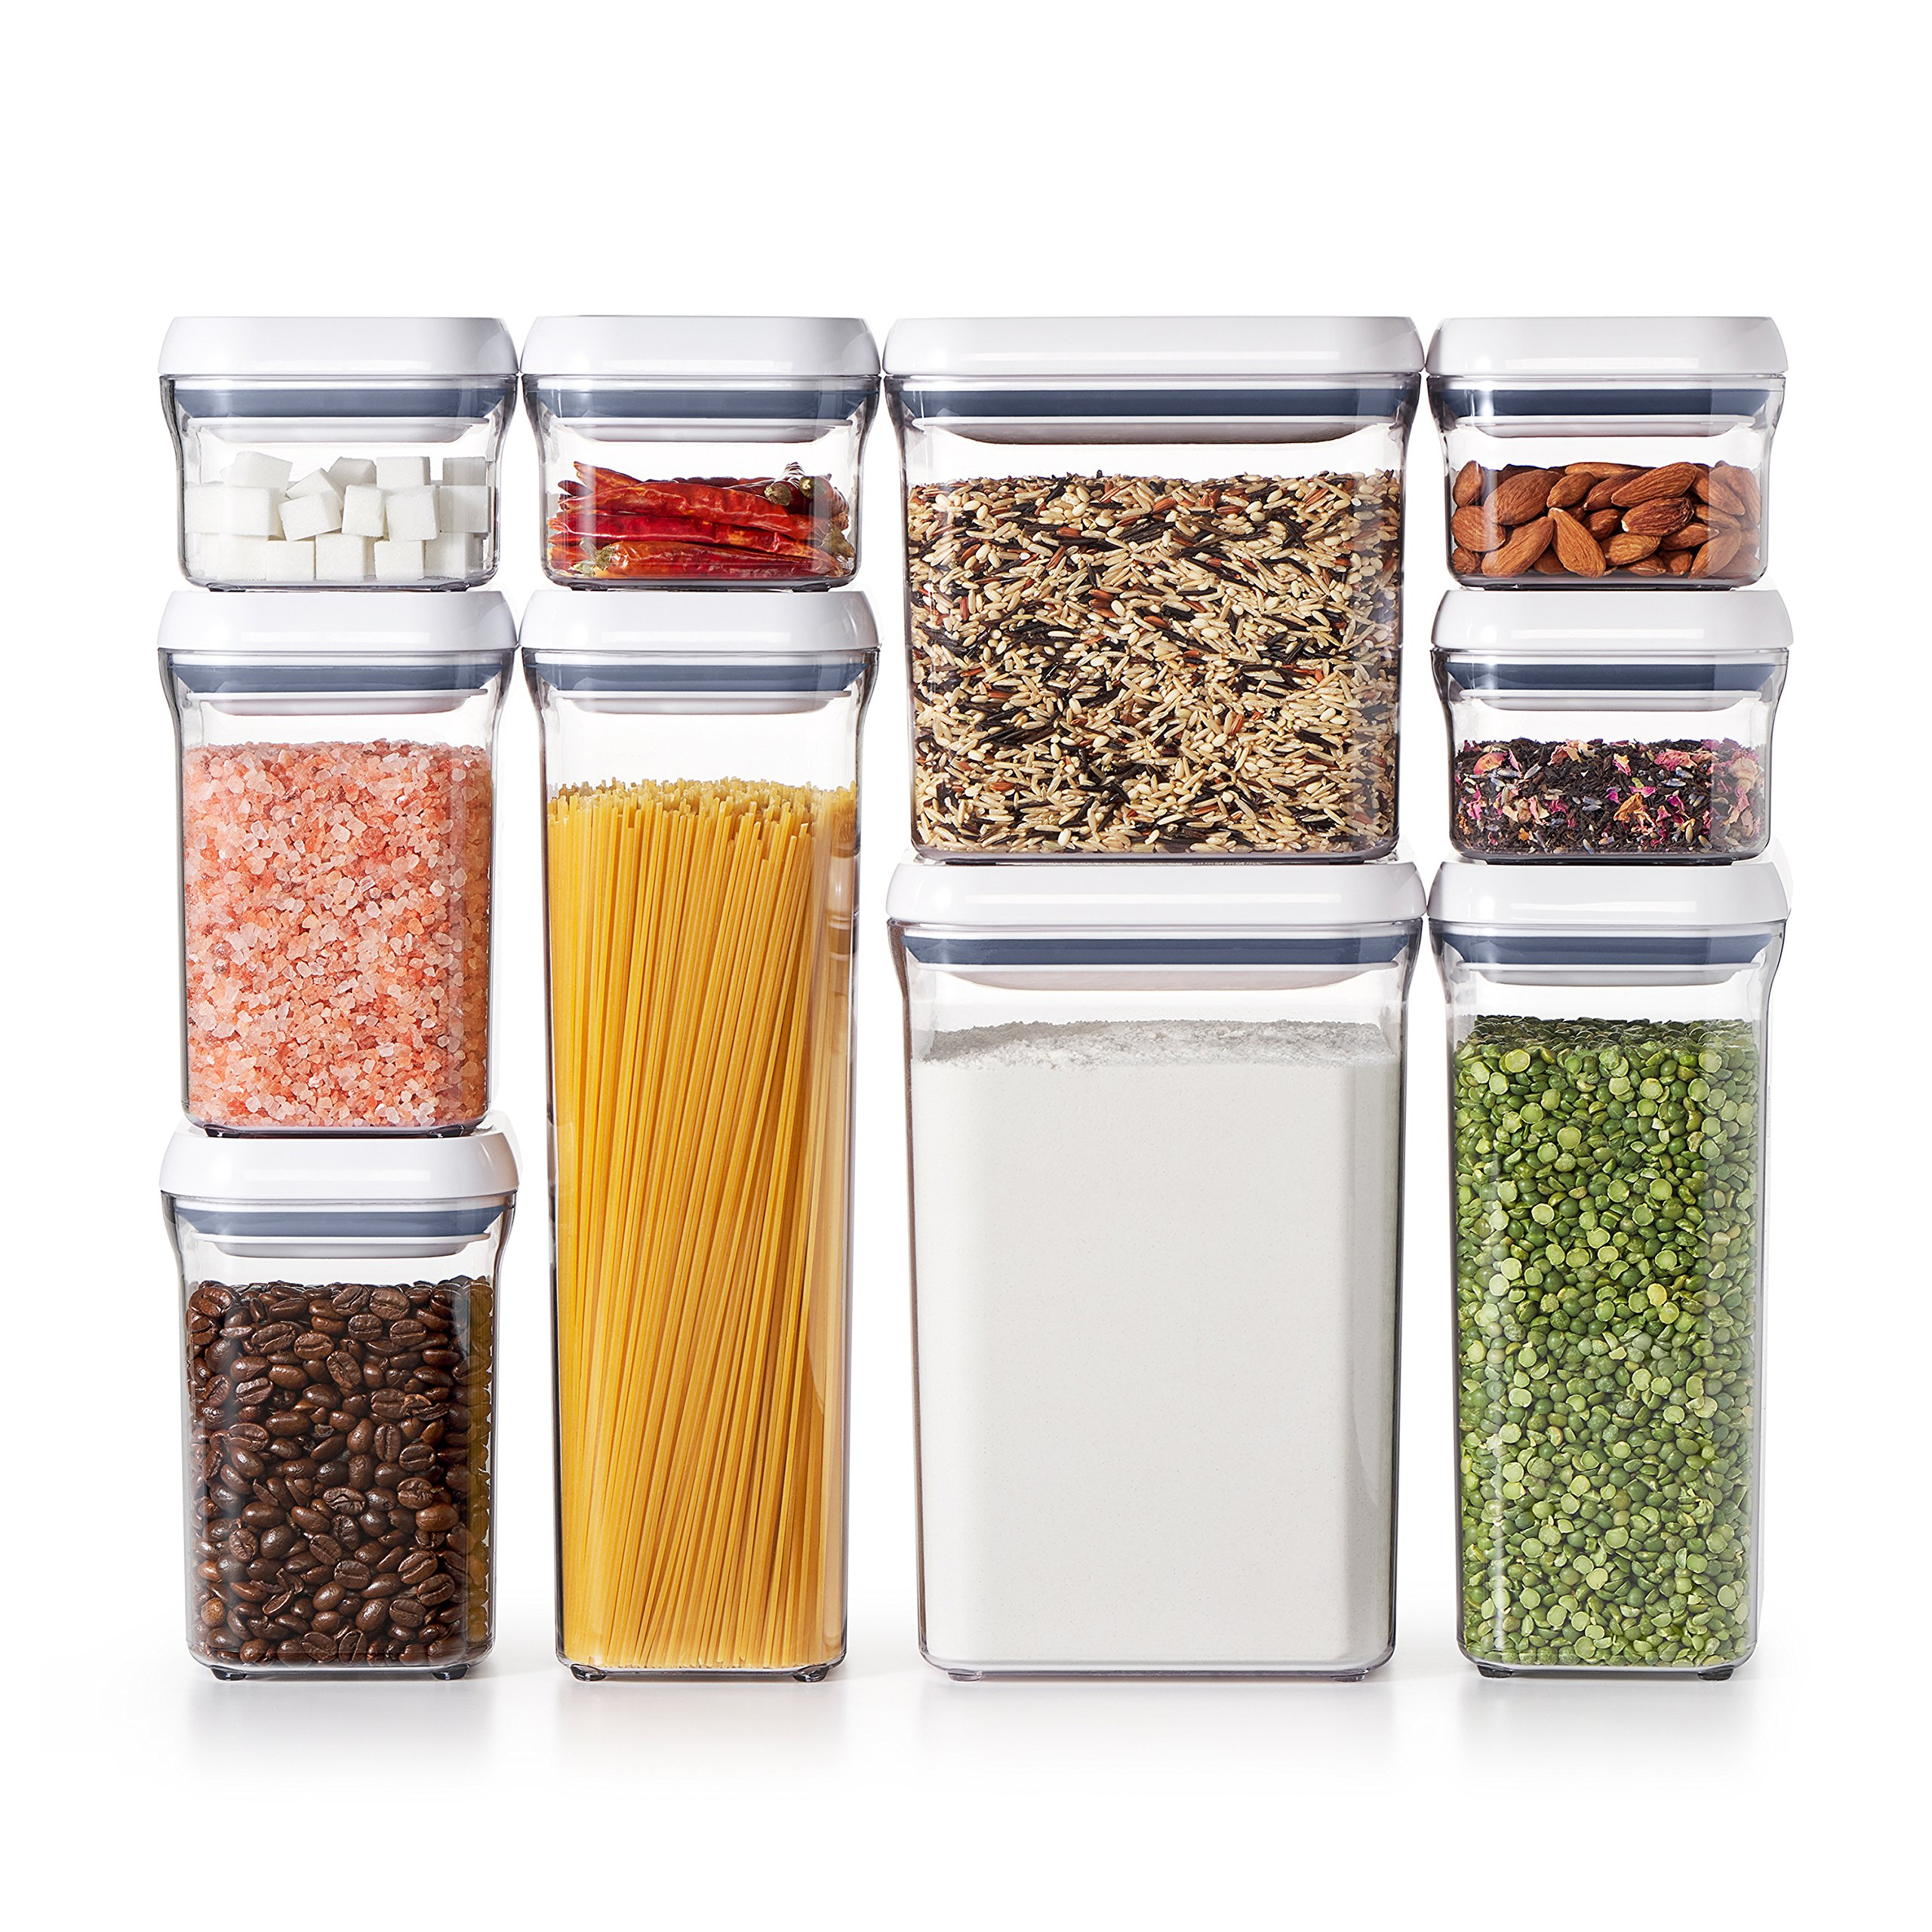 OXO Good Grips 10-Piece Airtight Food Storage POP Container Value Set by OXO